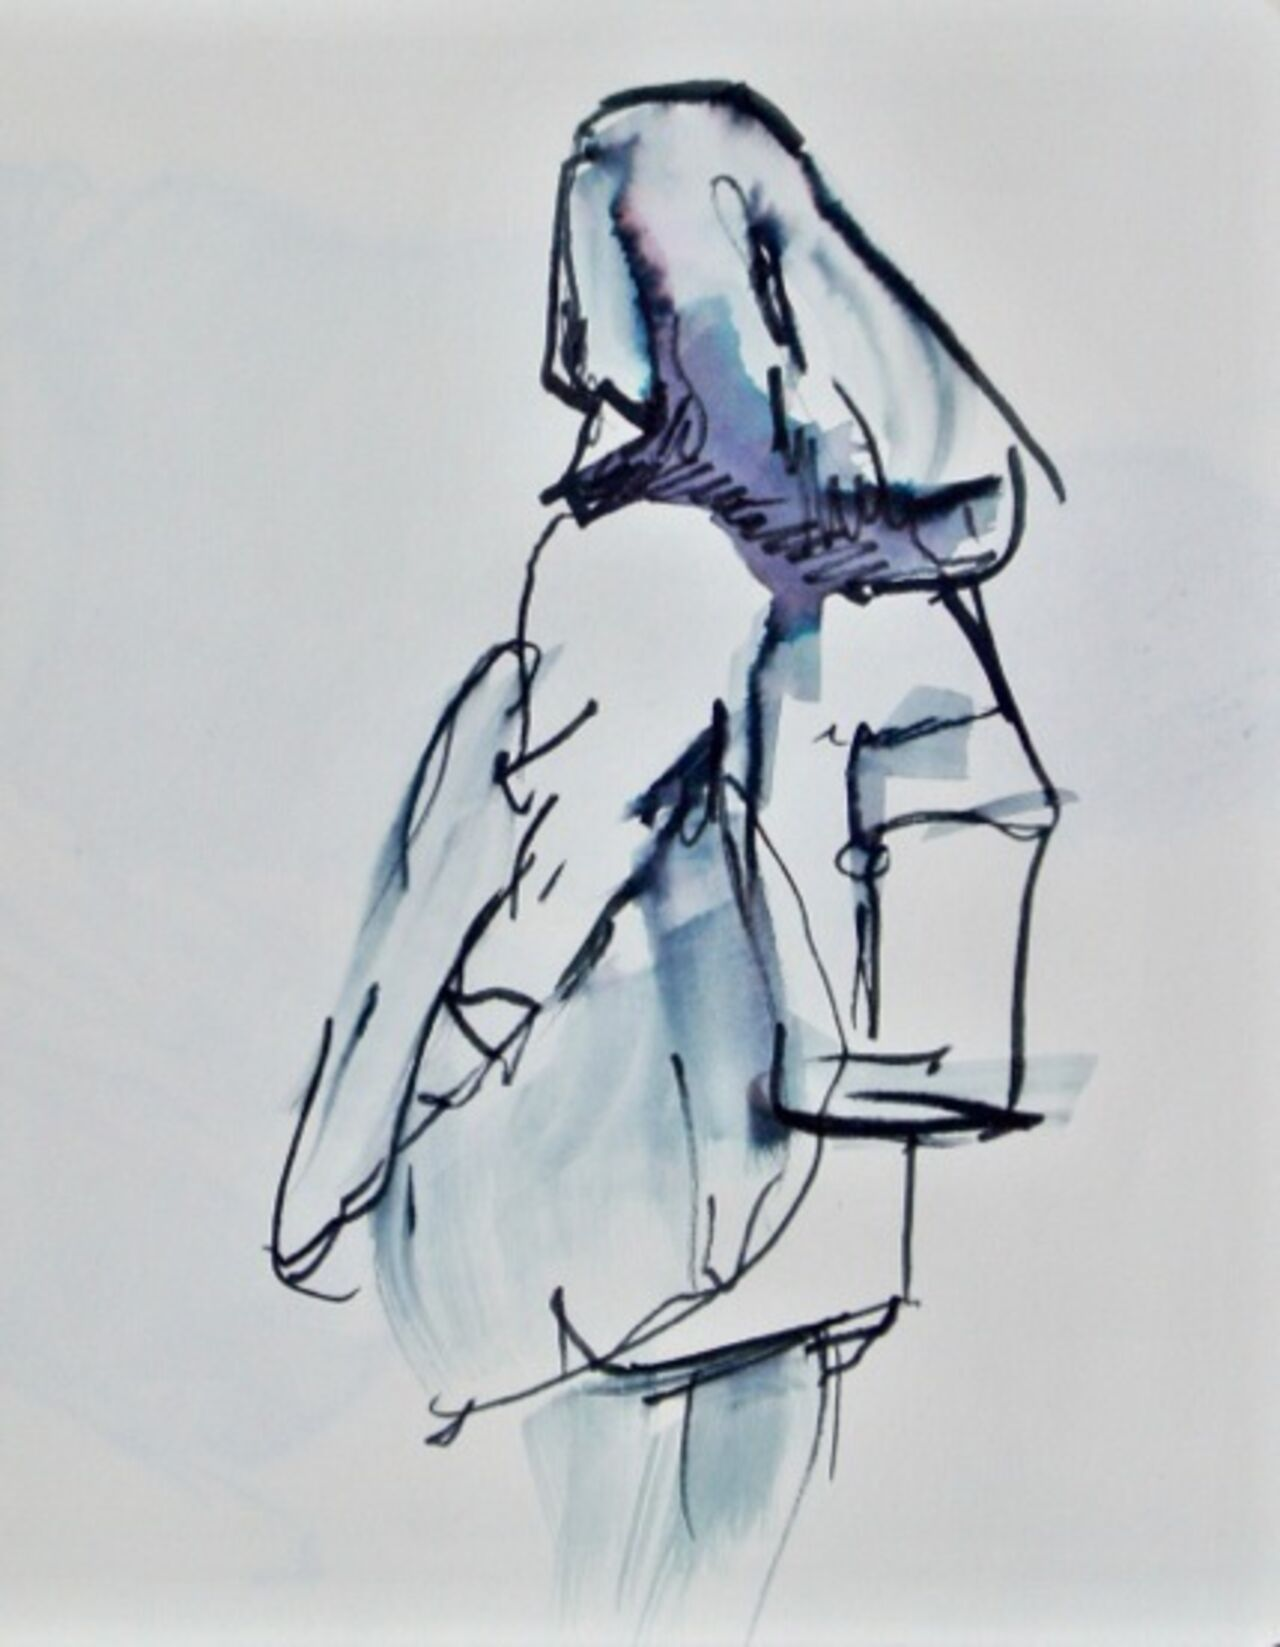 A sketch of someone standing, seen from behind, wearing a rucksack.